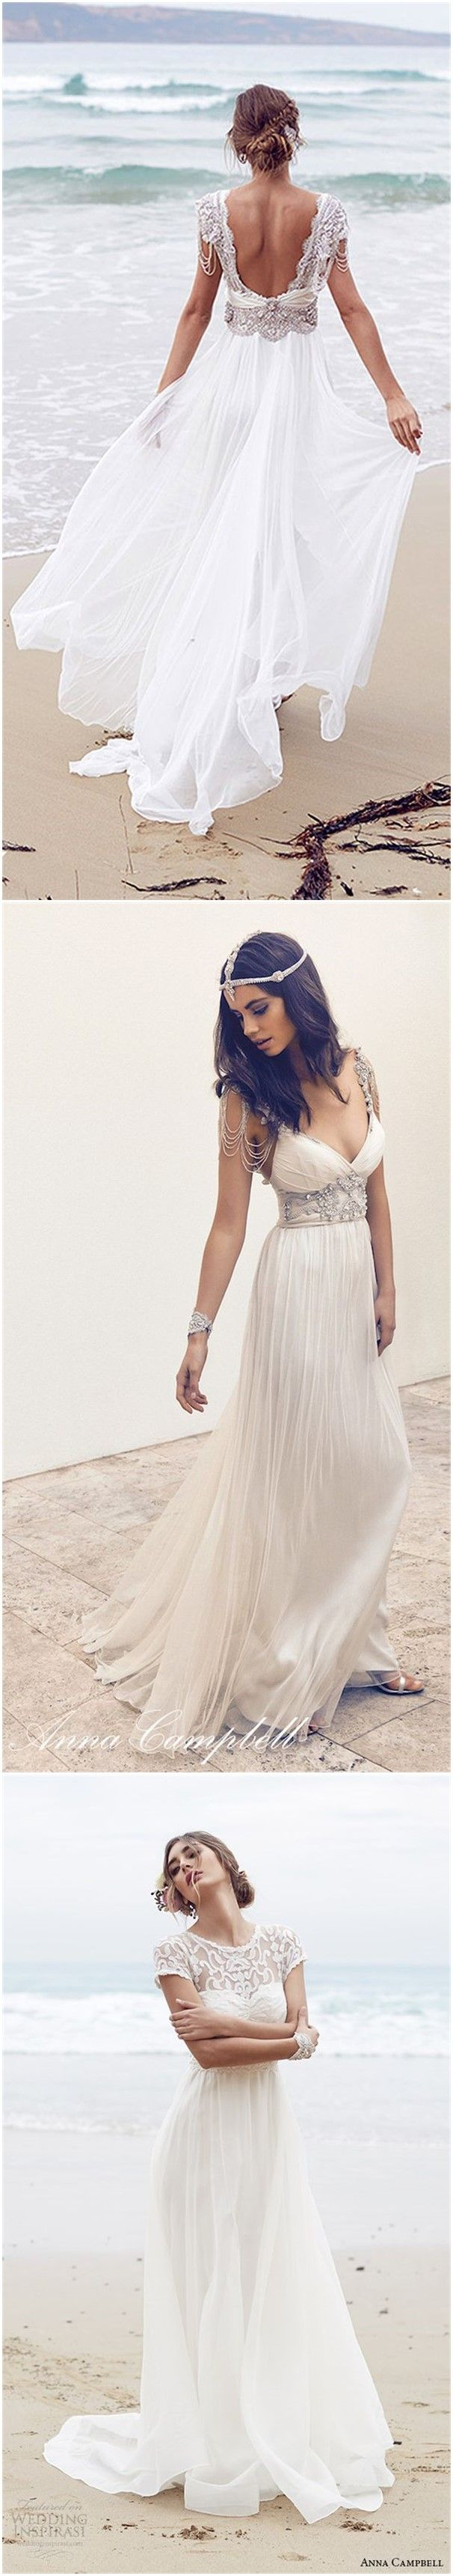 Top 22 Beach Wedding Dresses Ideas to Stand You out ...